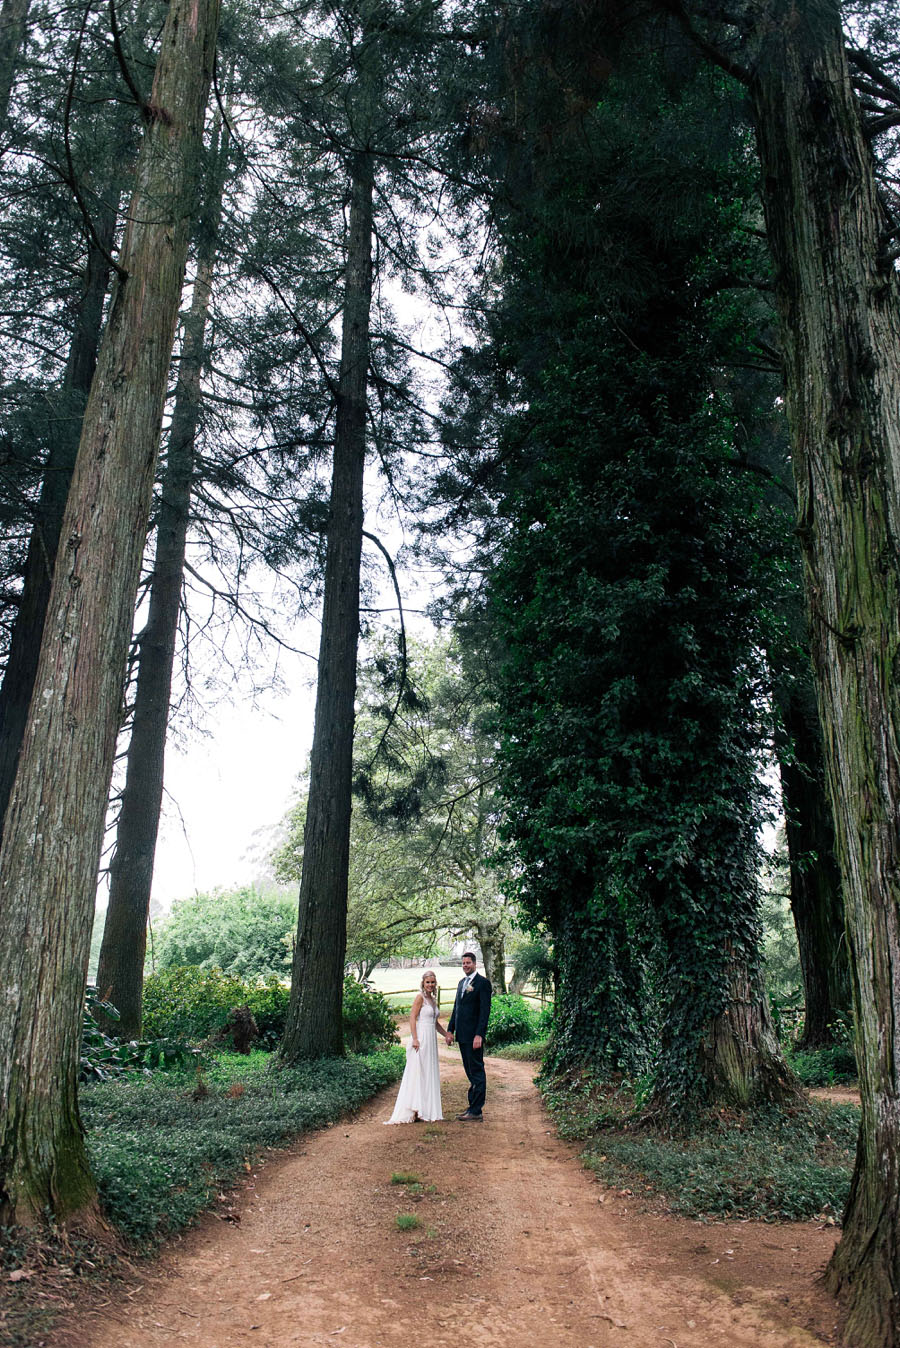 A Pretty Blush Pink Wedding with Proteas, Bunting & Lace Mike & Zoe (107)